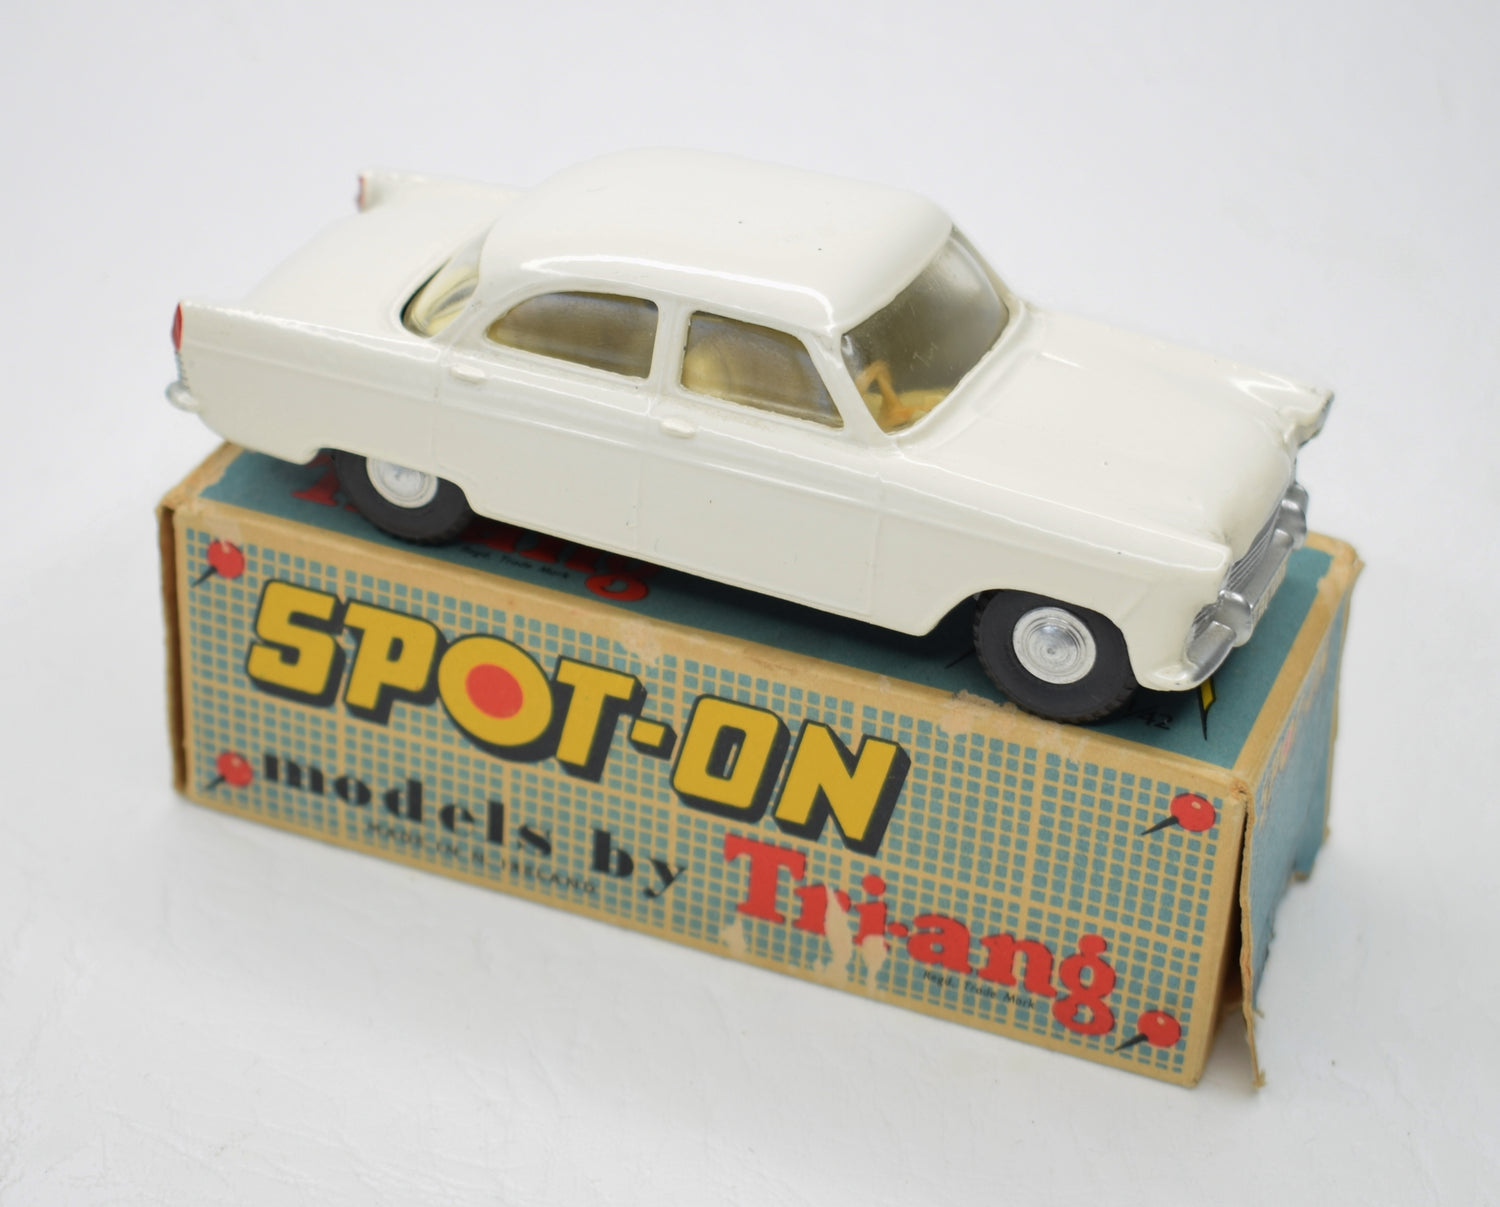 Spot-on 100 Ford Zodiac Very Near Mint/Boxed (Ivory).